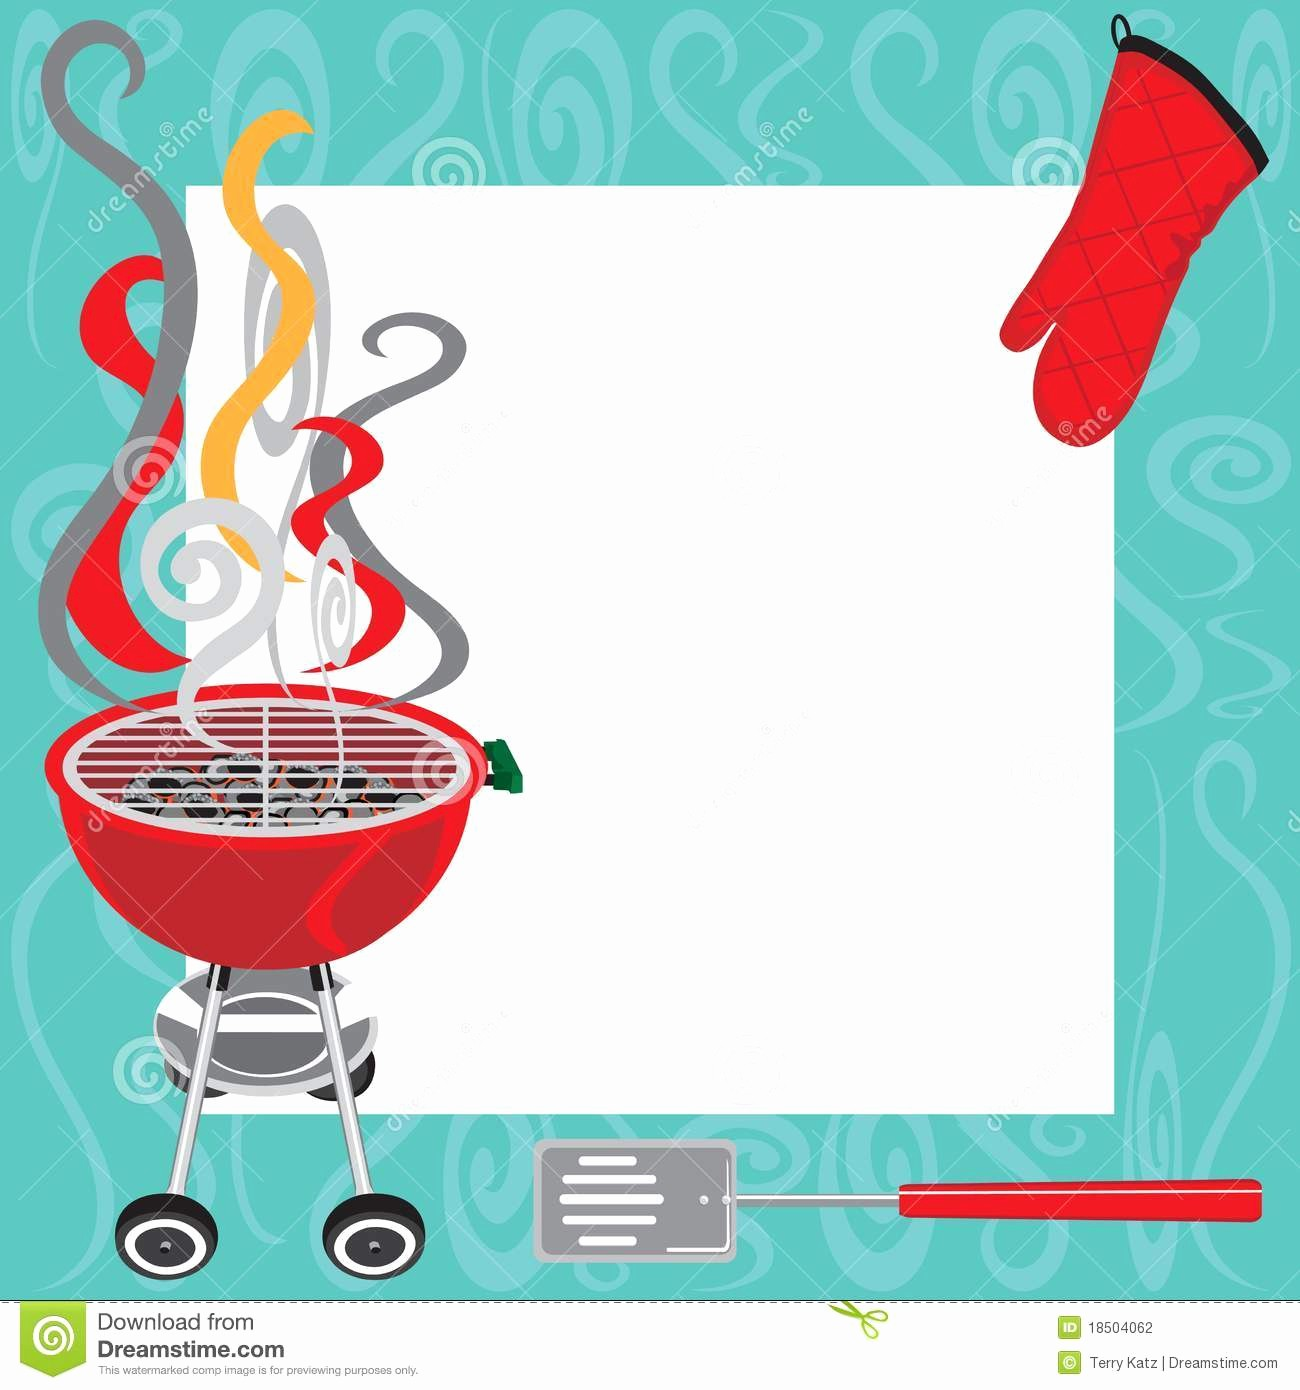 Free Downloadable Bbq Invitation Template Lovely 9 Best Of Printable Blank Bbq Invitations Bbq